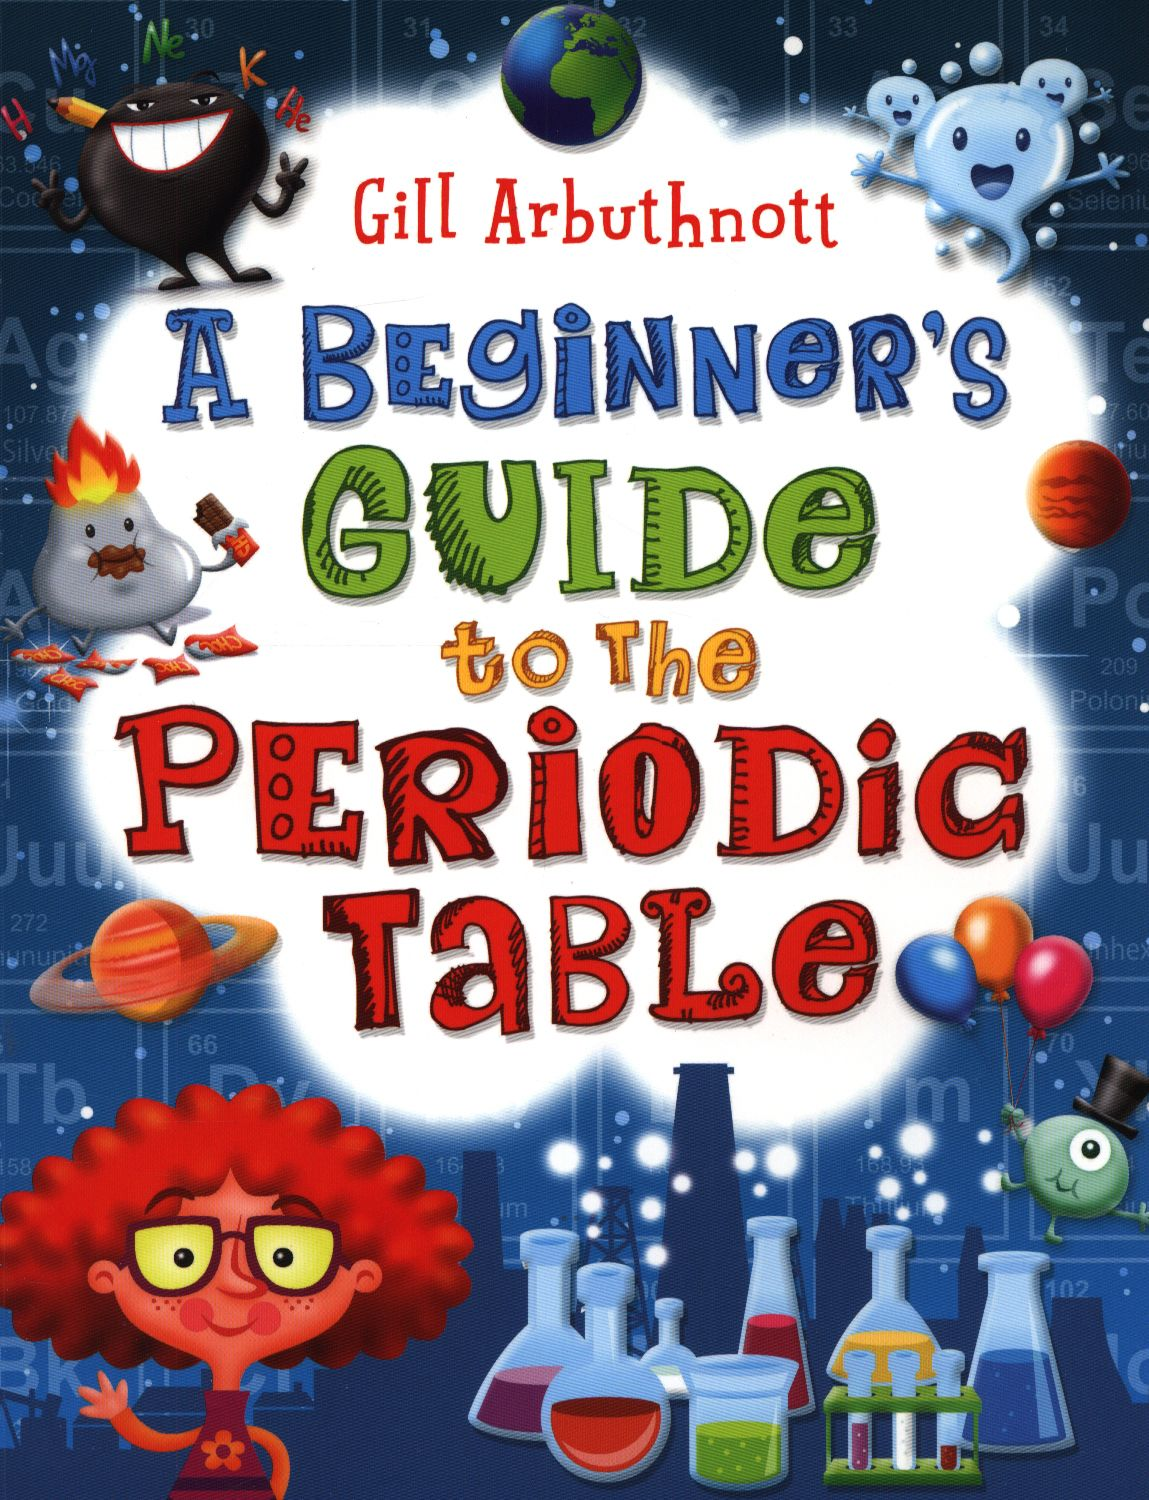 A guide to the elements that make up the periodic table fully fishpond australia a beginners guide to the periodic table by gill arbuthnott buy books online a beginners guide to the periodic table urtaz Gallery